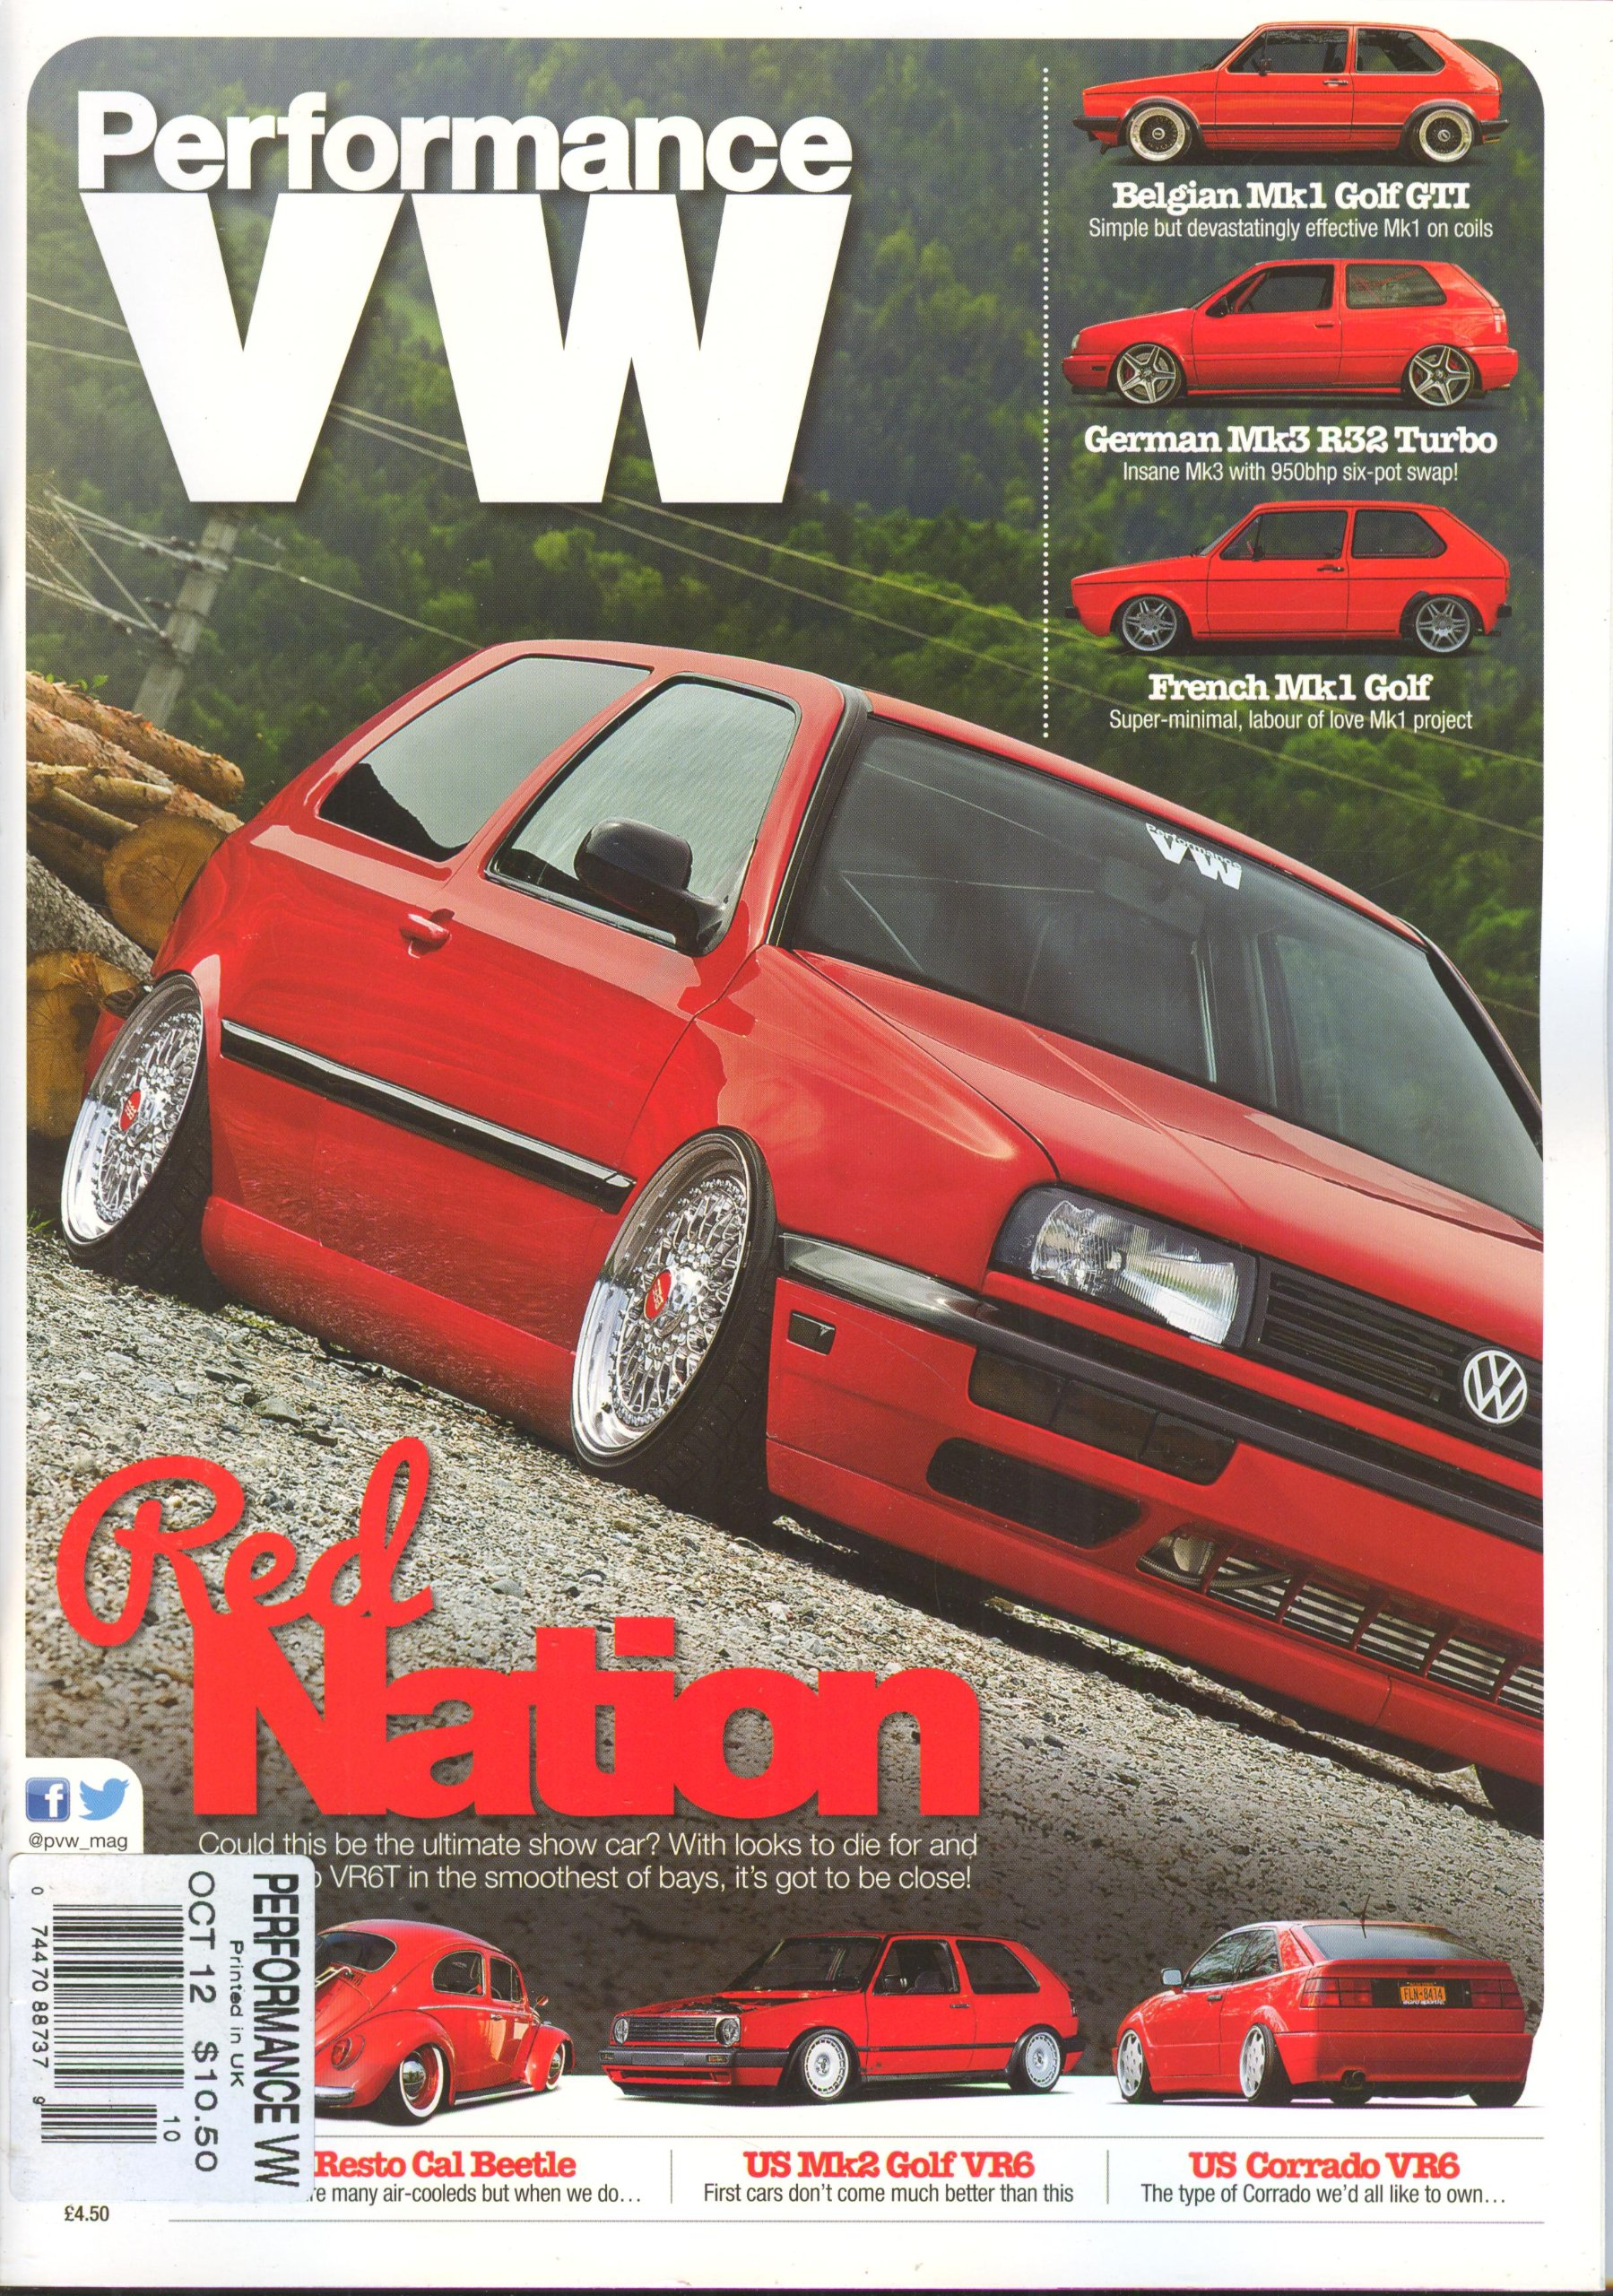 Performance VW (October 2012, German MK3 R32 Turbo): Elliott Roberts: Amazon.com: Books